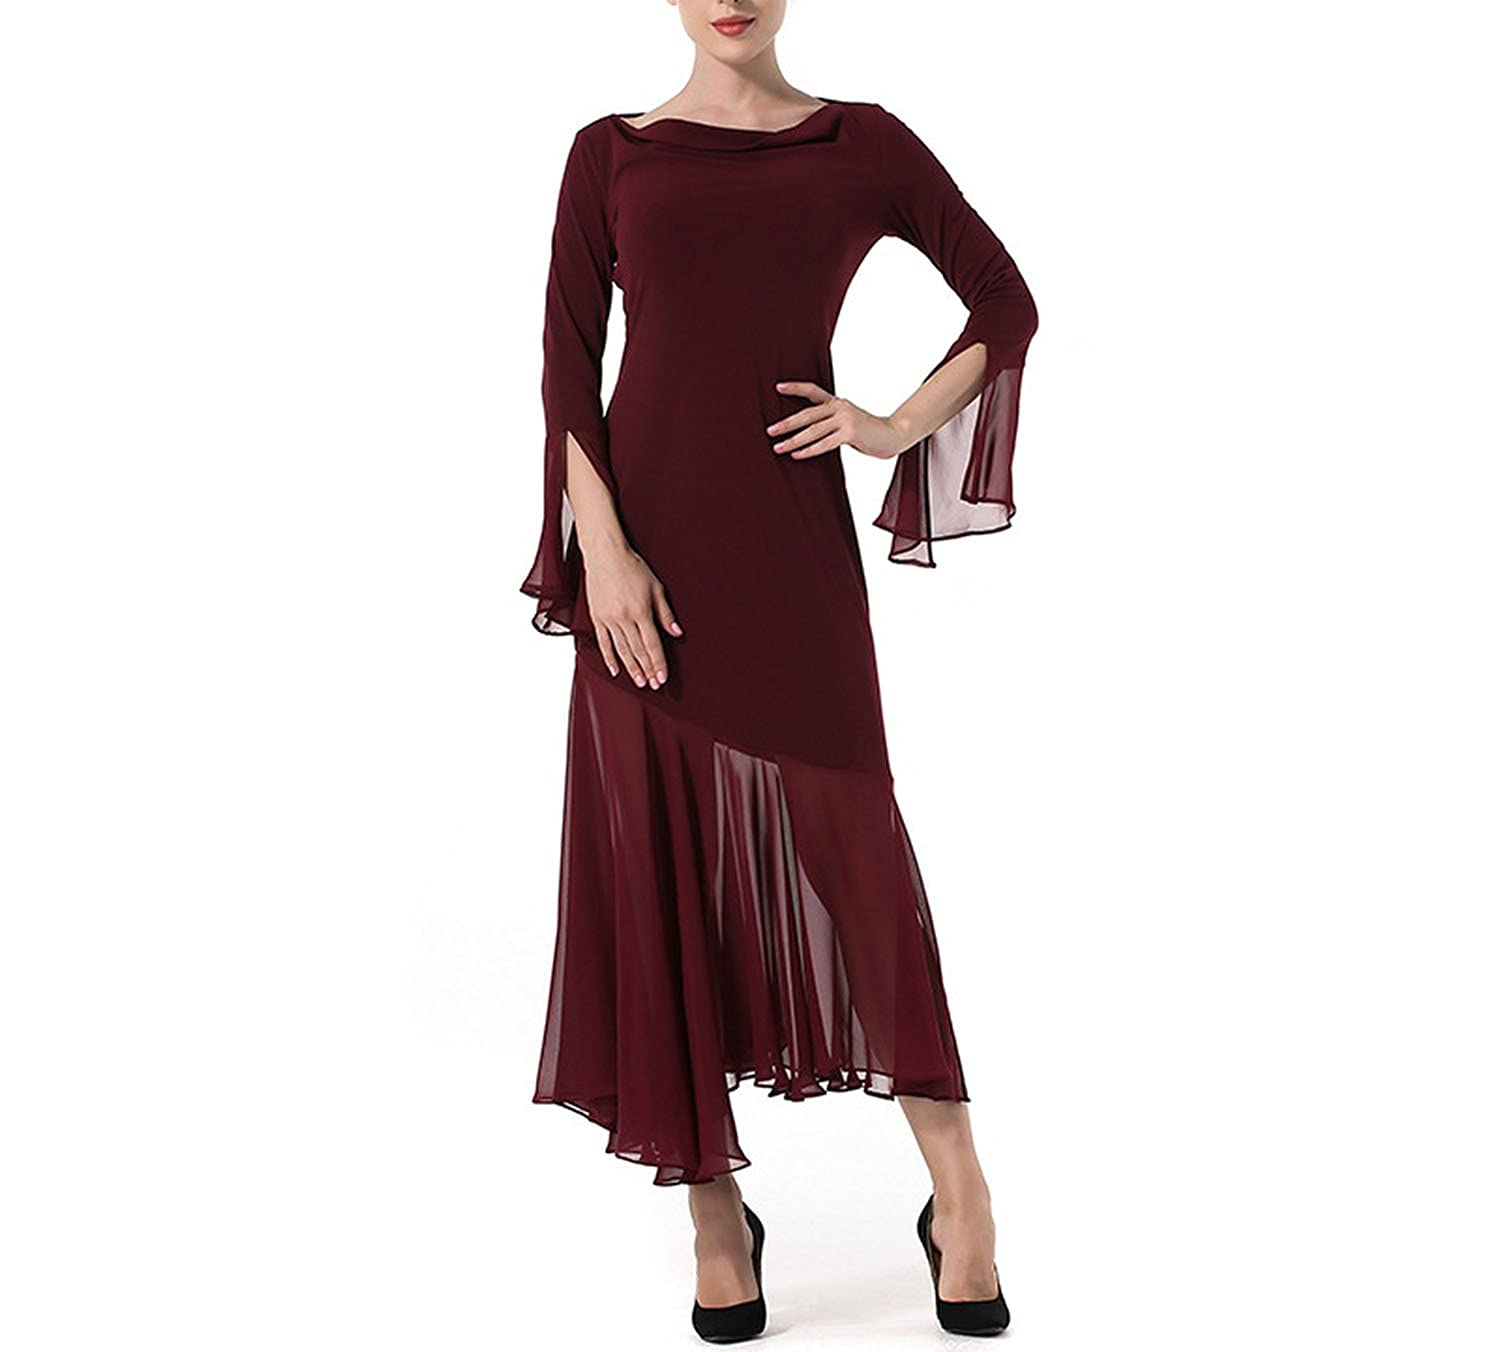 2018 s Foreign Trade Spring New European and American Solid Color Flying Sleeves Irregular he